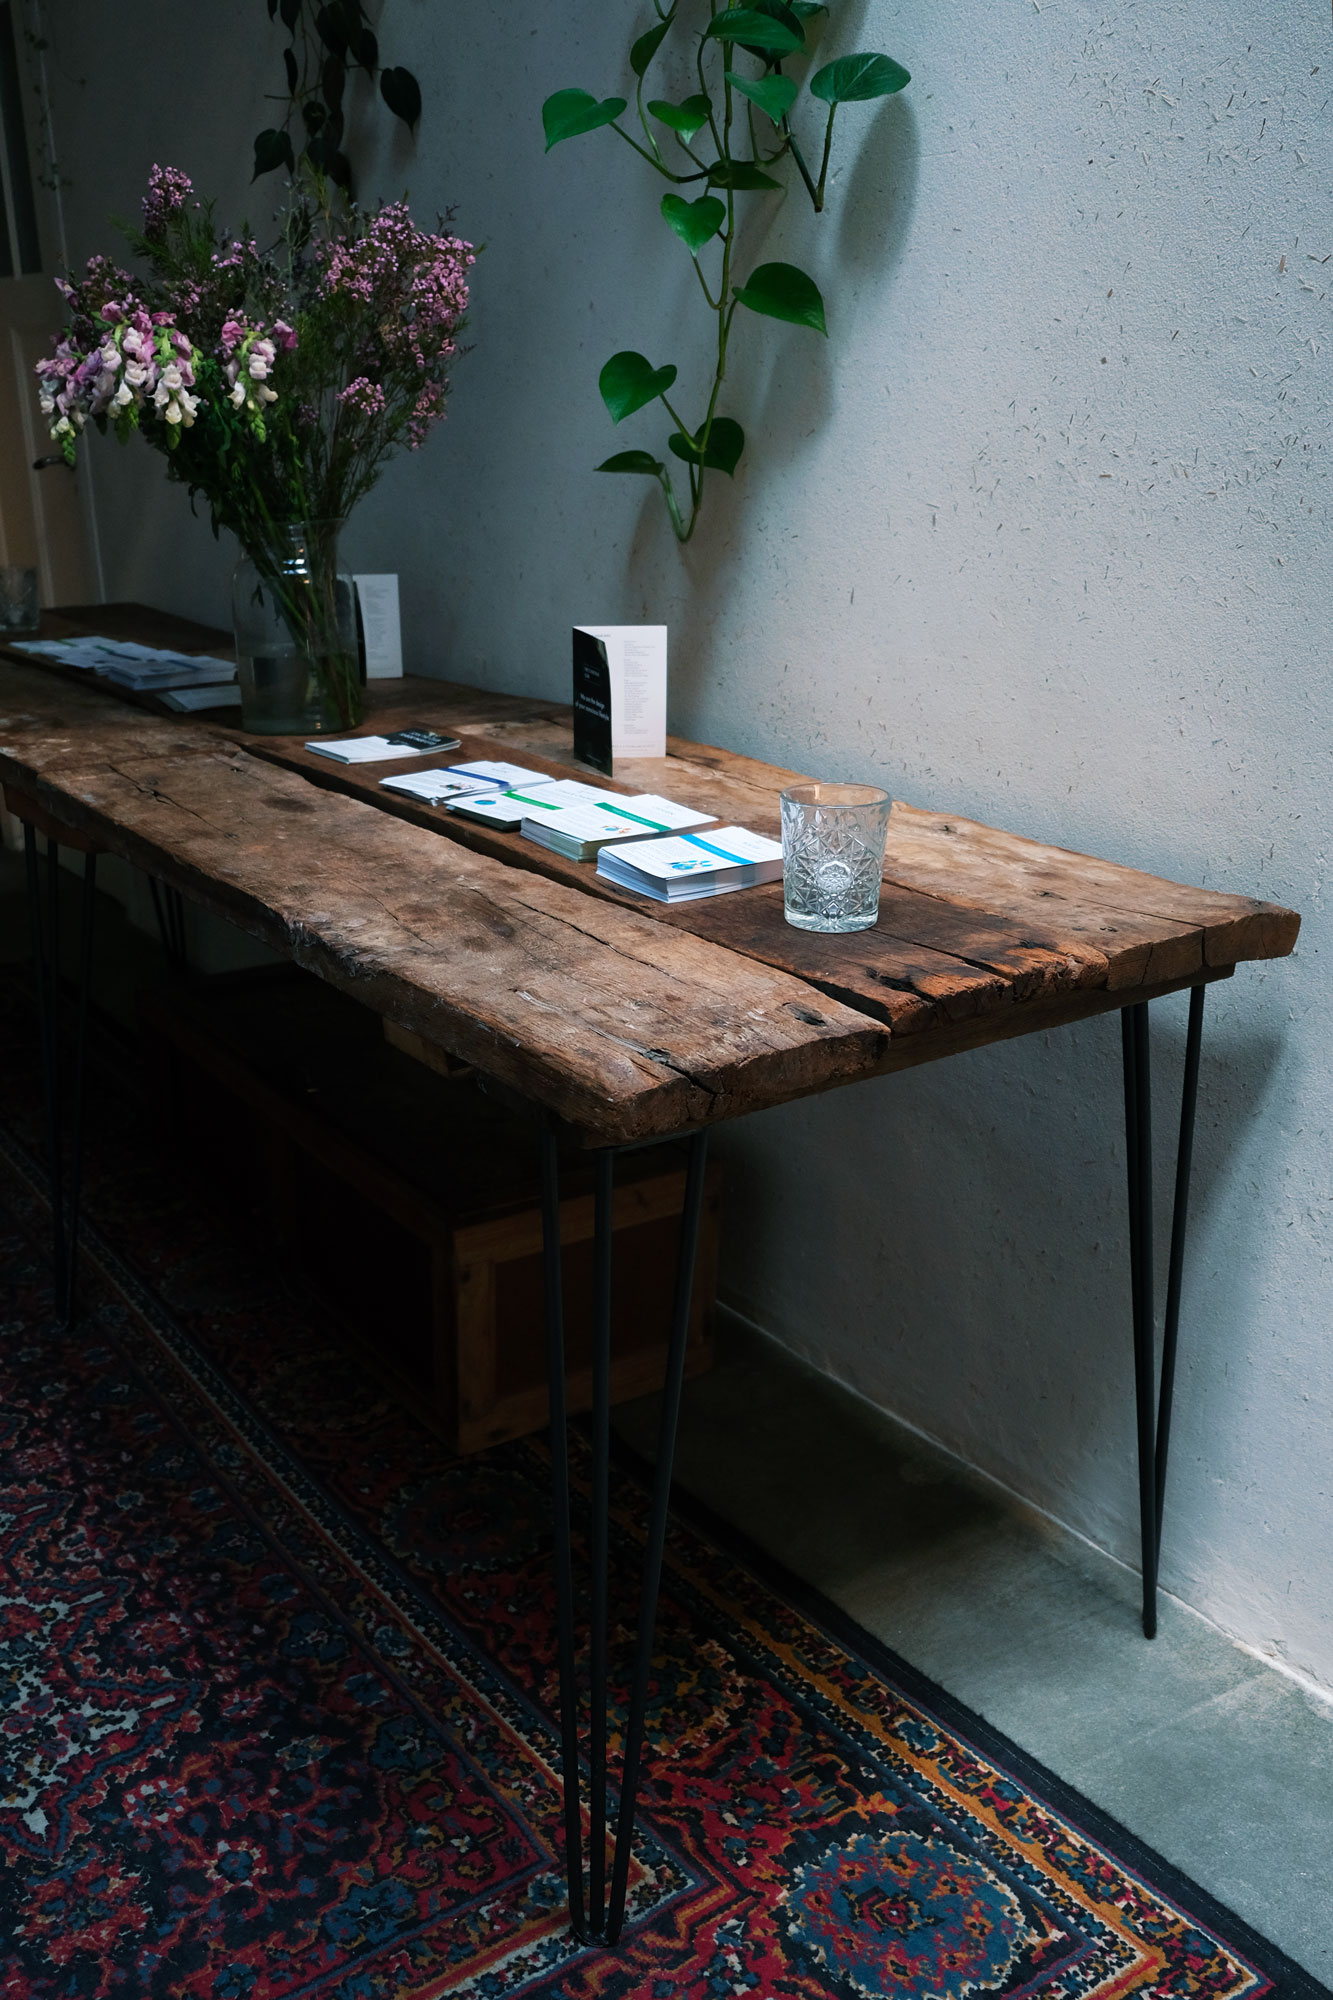 Antique Table - Did you know that all of the tables at The Conscious Club are self-made from antique and upcycled wood? We made the tables in The Green Temple from 300 year old oak floor boards from the famous Wester Tower. This is the same oak from the 1700's, where they made all of the V.O.C. ships from and you can still see this wood back in the ceilings of old Dutch churches like the Oudekerk. The wood from our flyer table in the hall comes from an old farm and we've transformed old army lockers into tables for our café area.